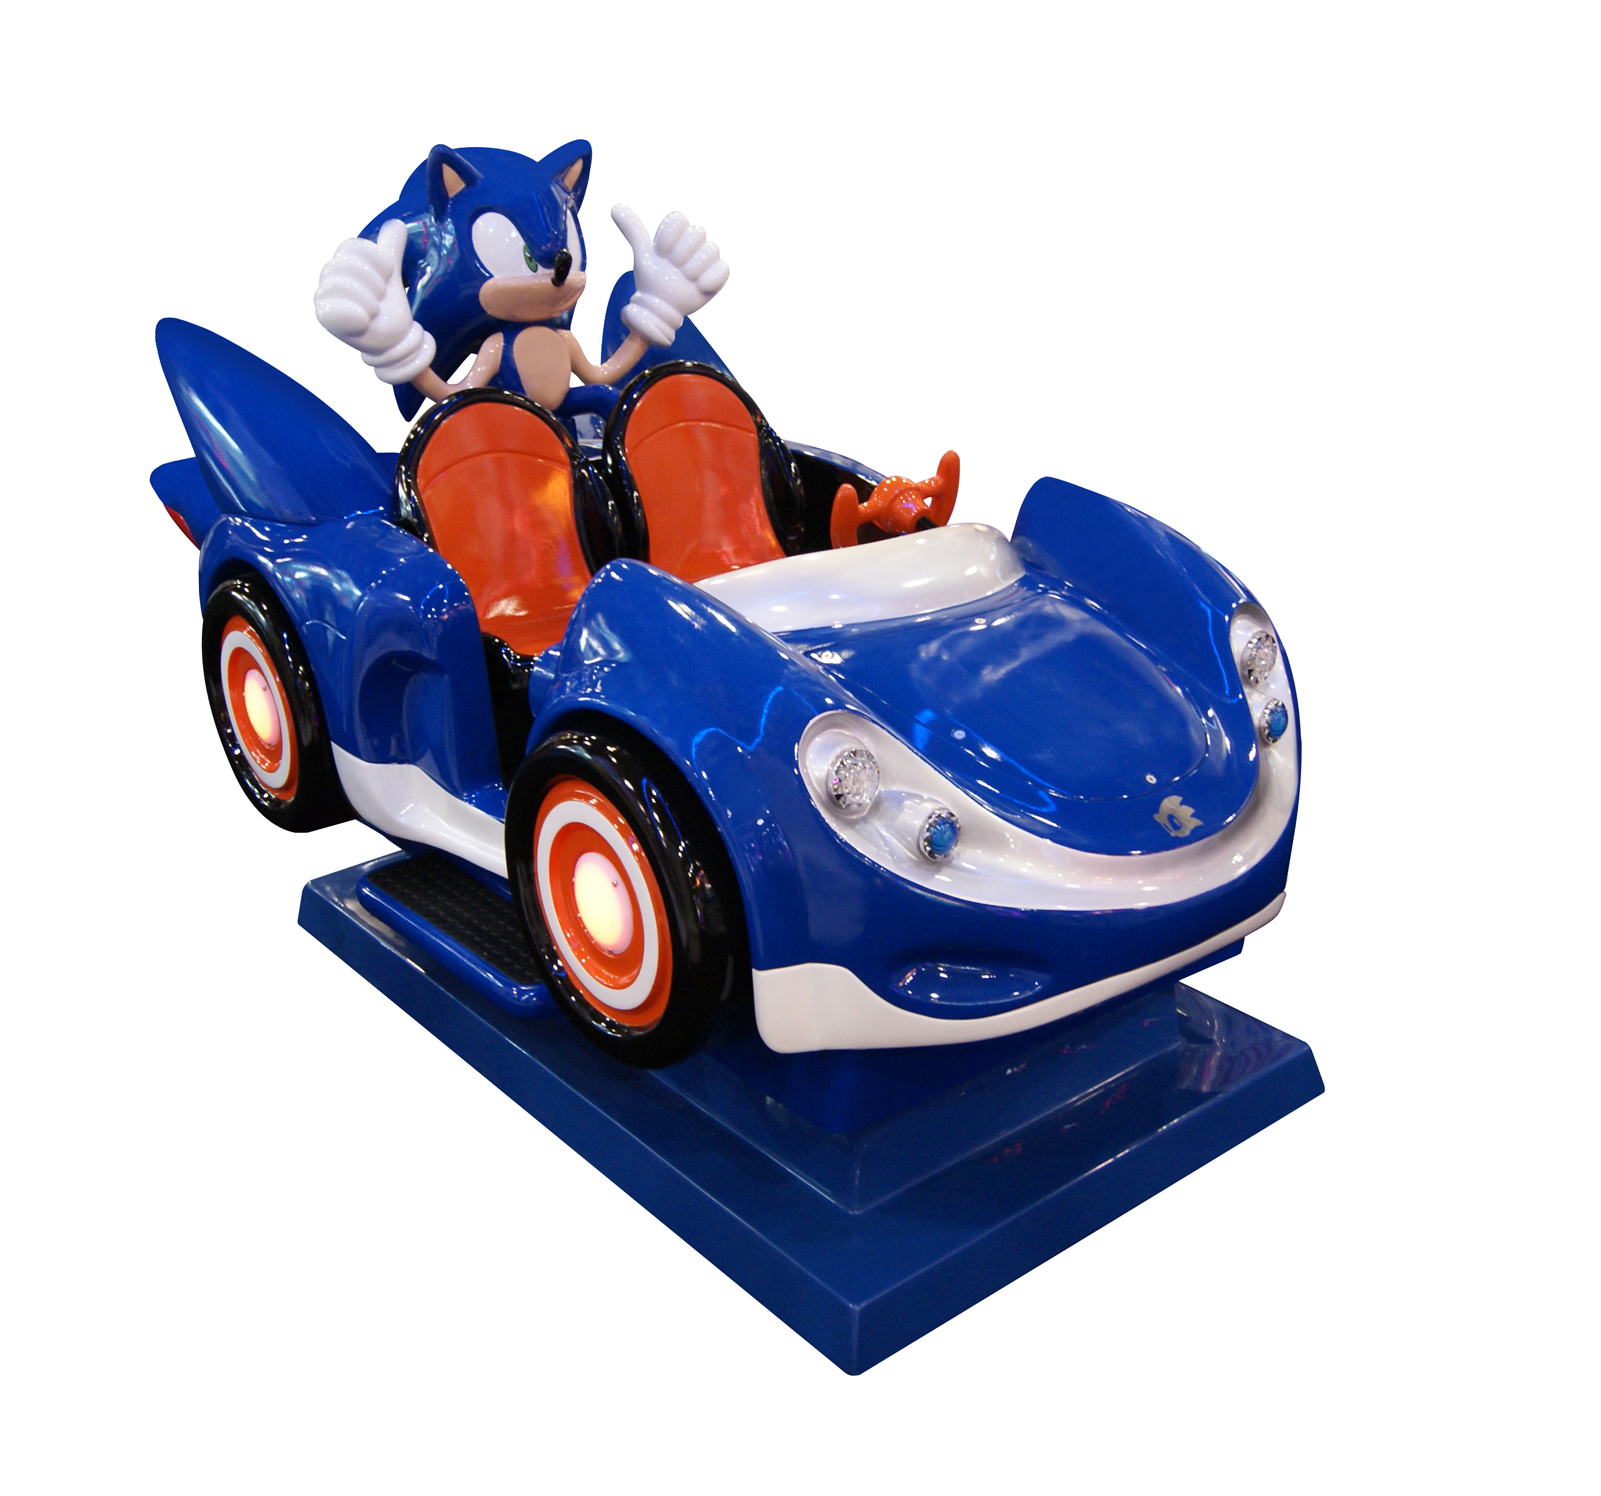 Image - Sonic kiddie ride.jpg - Sonic News Network, the Sonic Wiki